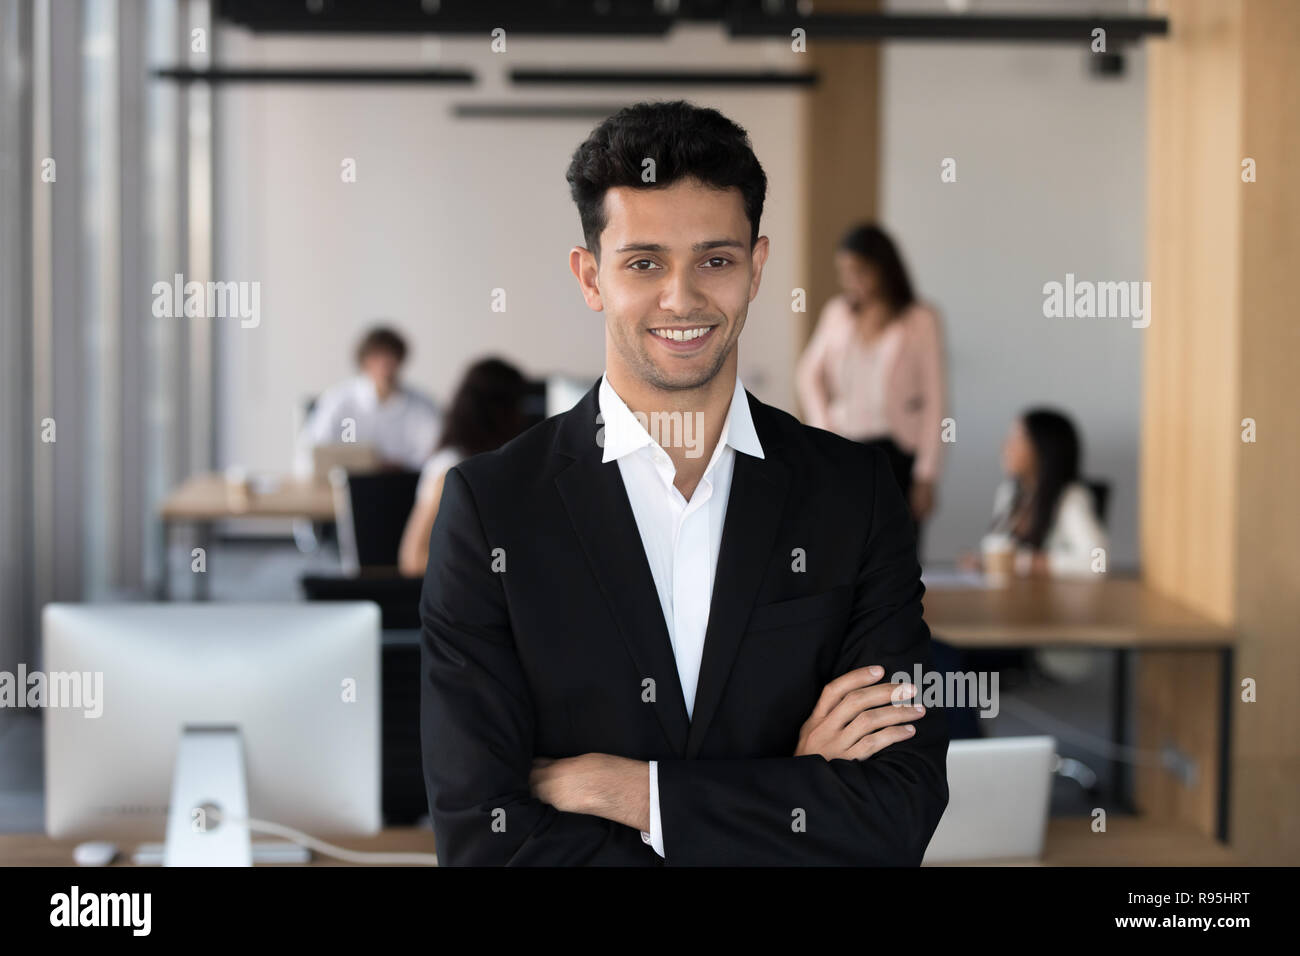 Middle eastern ethnicity businessman in suit posing in coworking - Stock Image